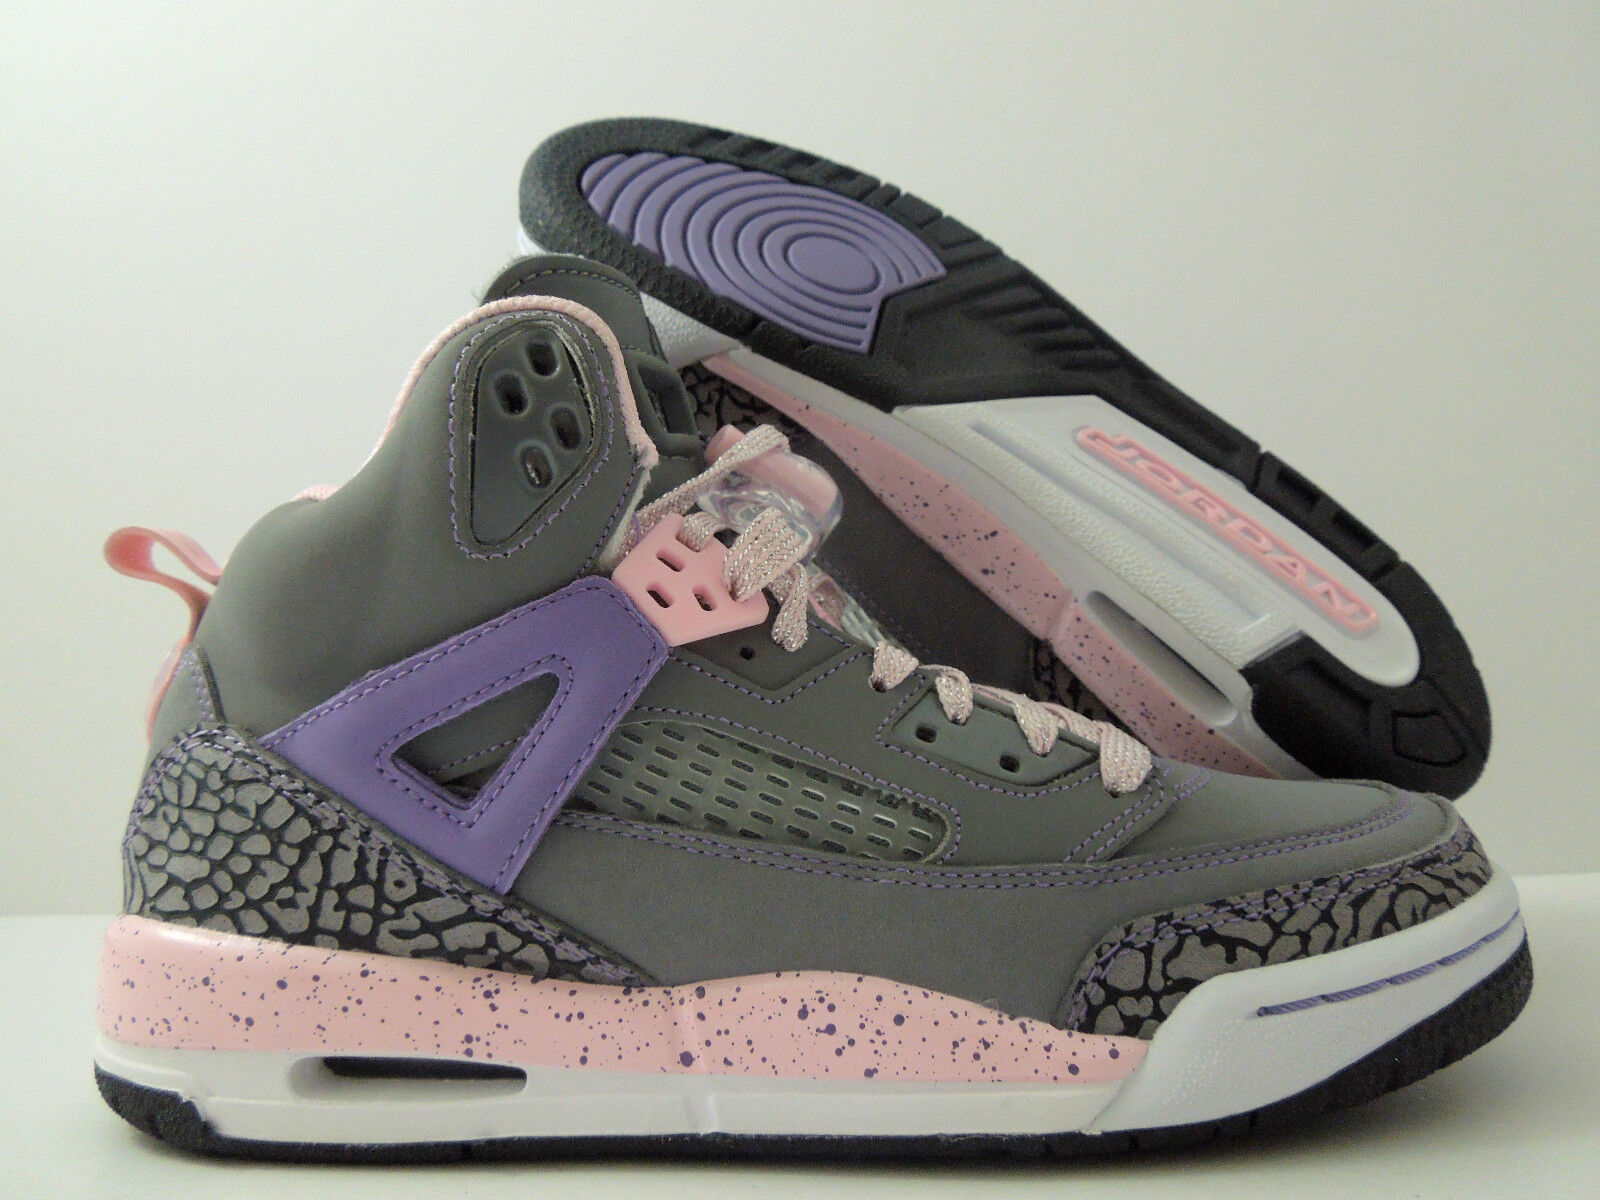 NIKE GIRLS AIR JORDAN SPIZIKE GS GREY-PINK WMNS SZ 7 - SZ 5.5Y [535712-028]